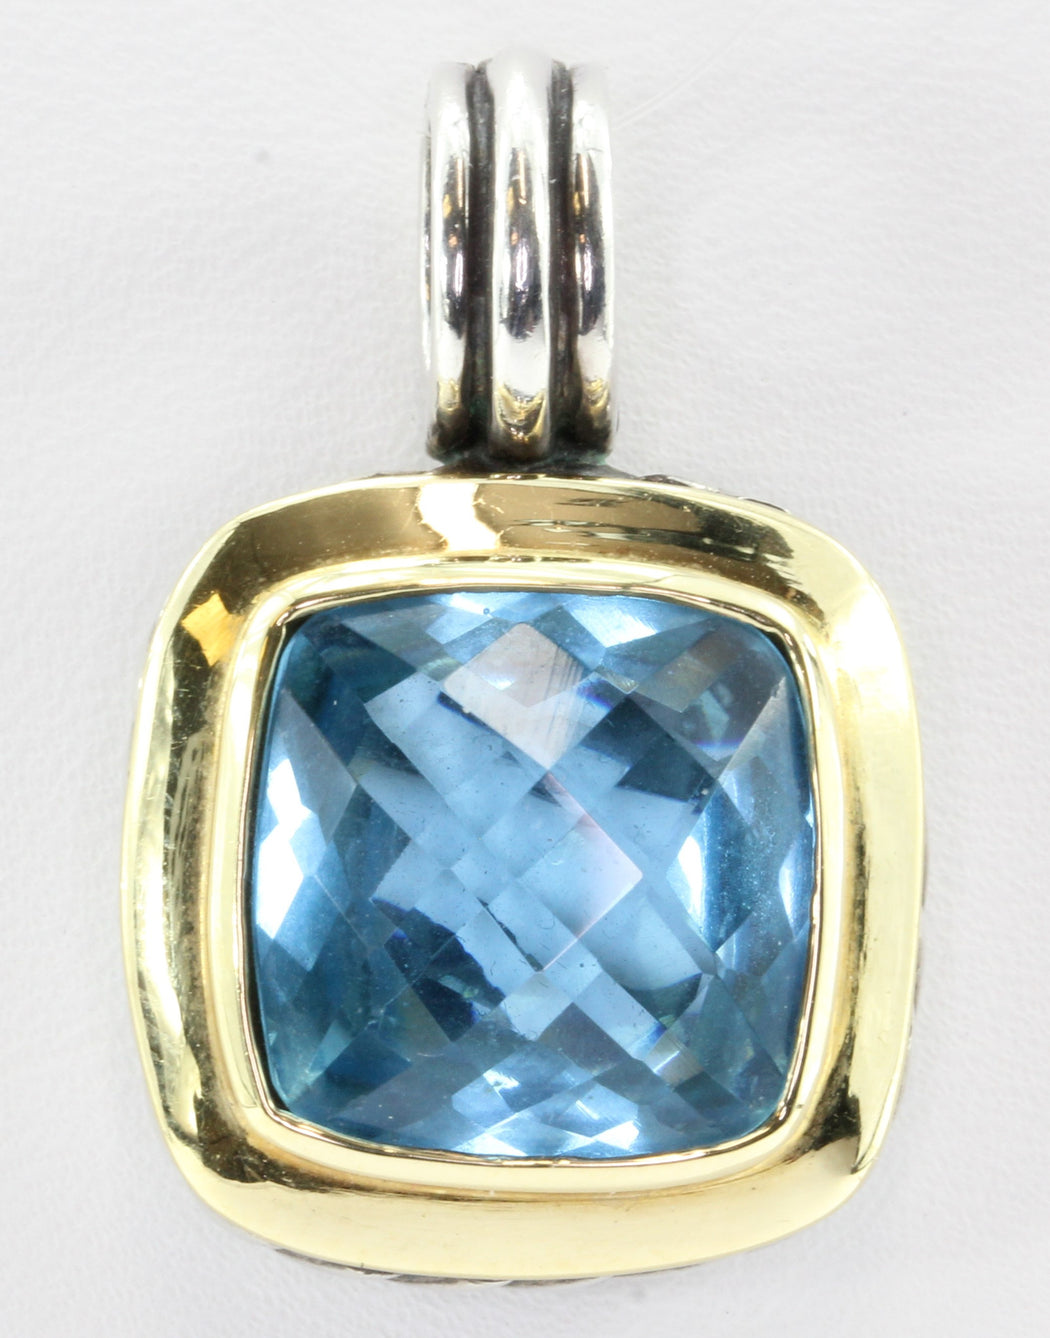 David Yurman Large Albion 18K Sterling Silver Blue Topaz Enhancer Pendant - Queen May